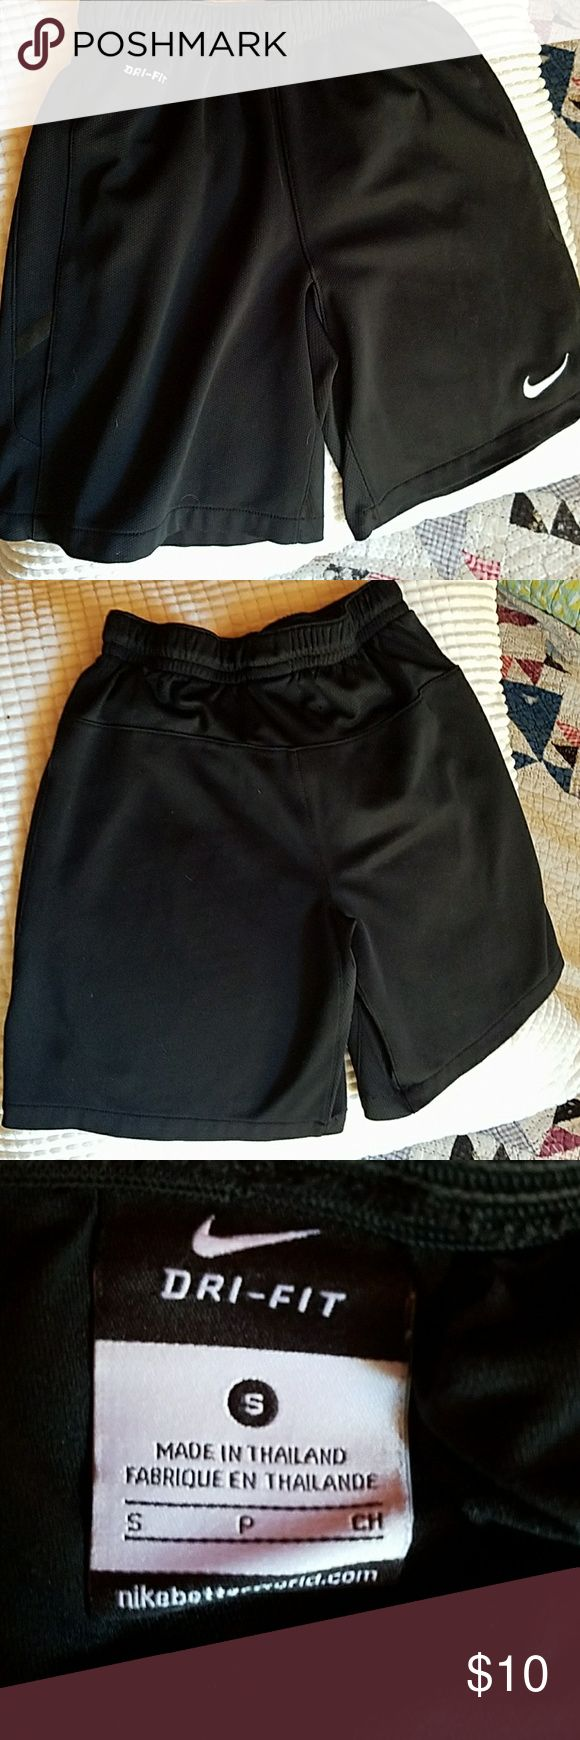 Boys Nike dry-fit shorts Black dry-fit shorts with built in brief. Like-new condition. Nike Bottoms Shorts